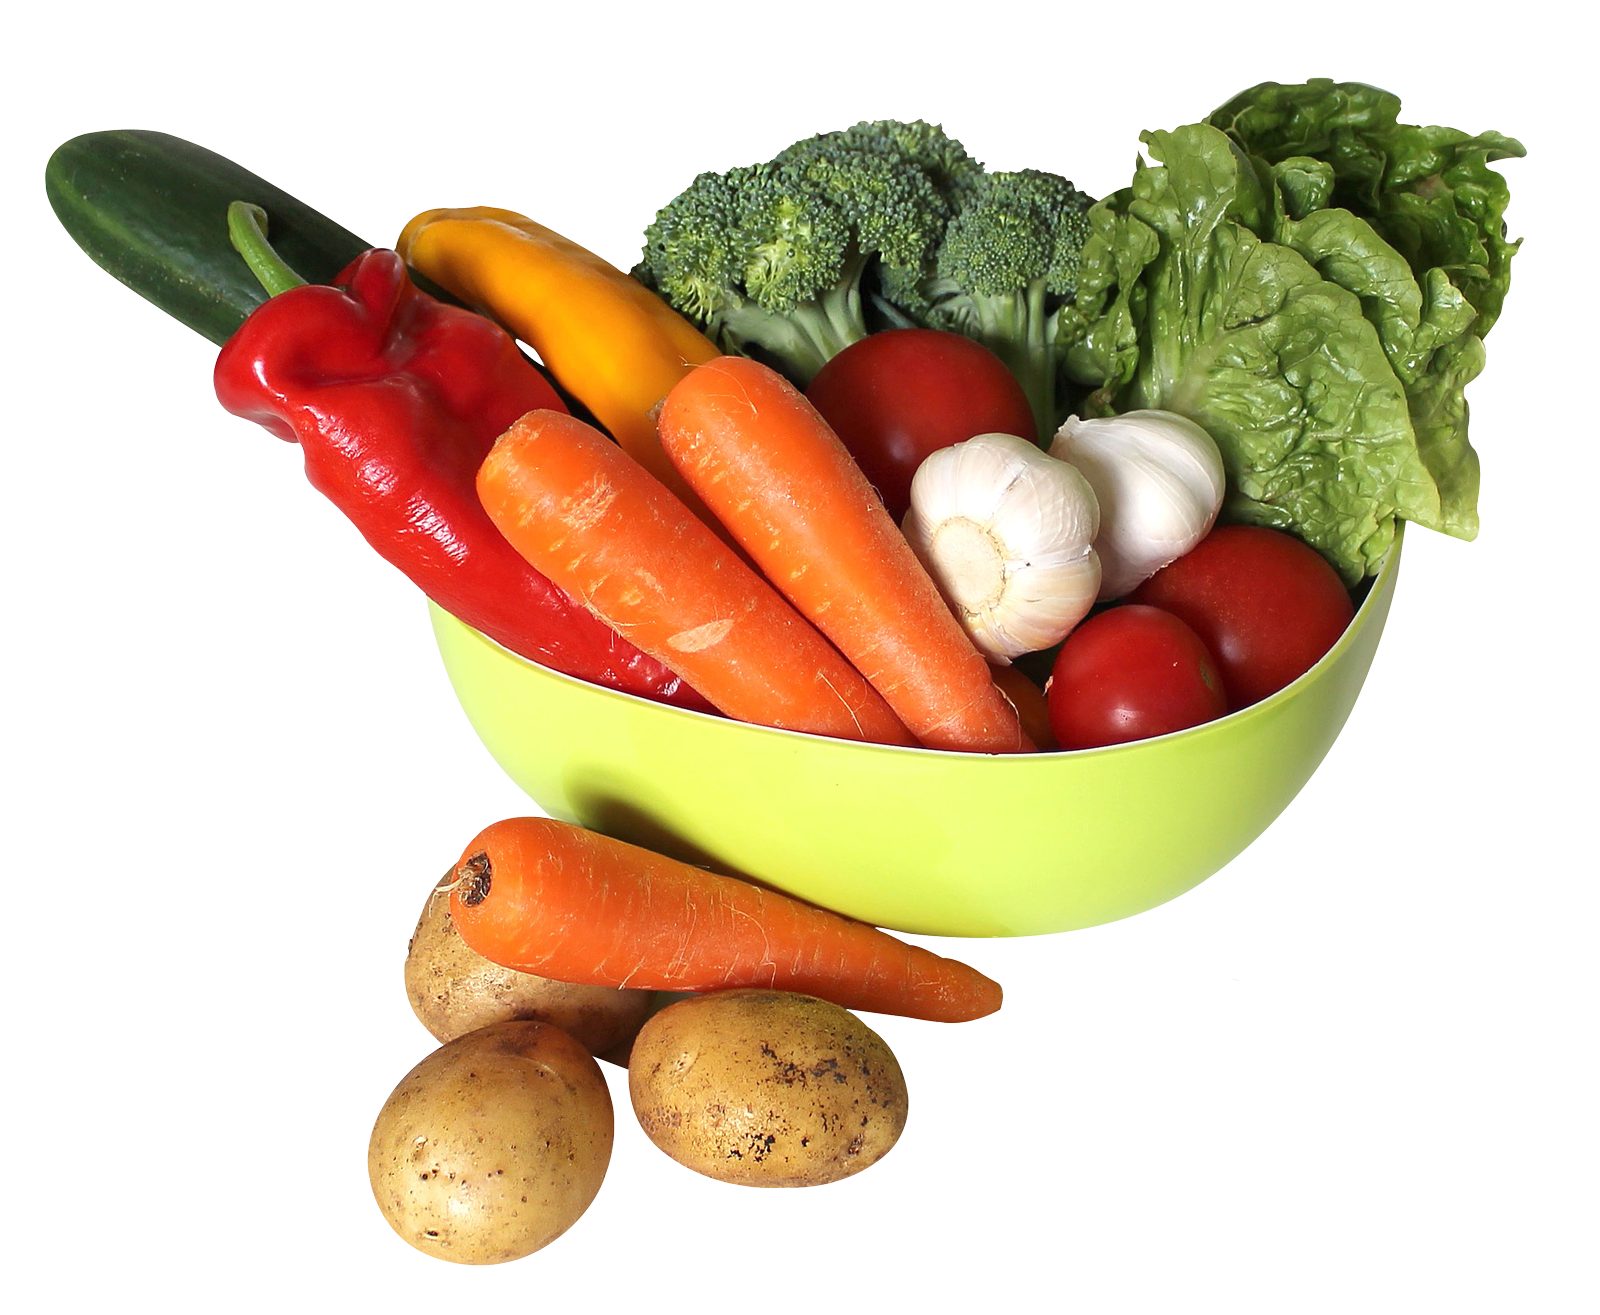 Vegetables PNG Transparent Image - PngPix